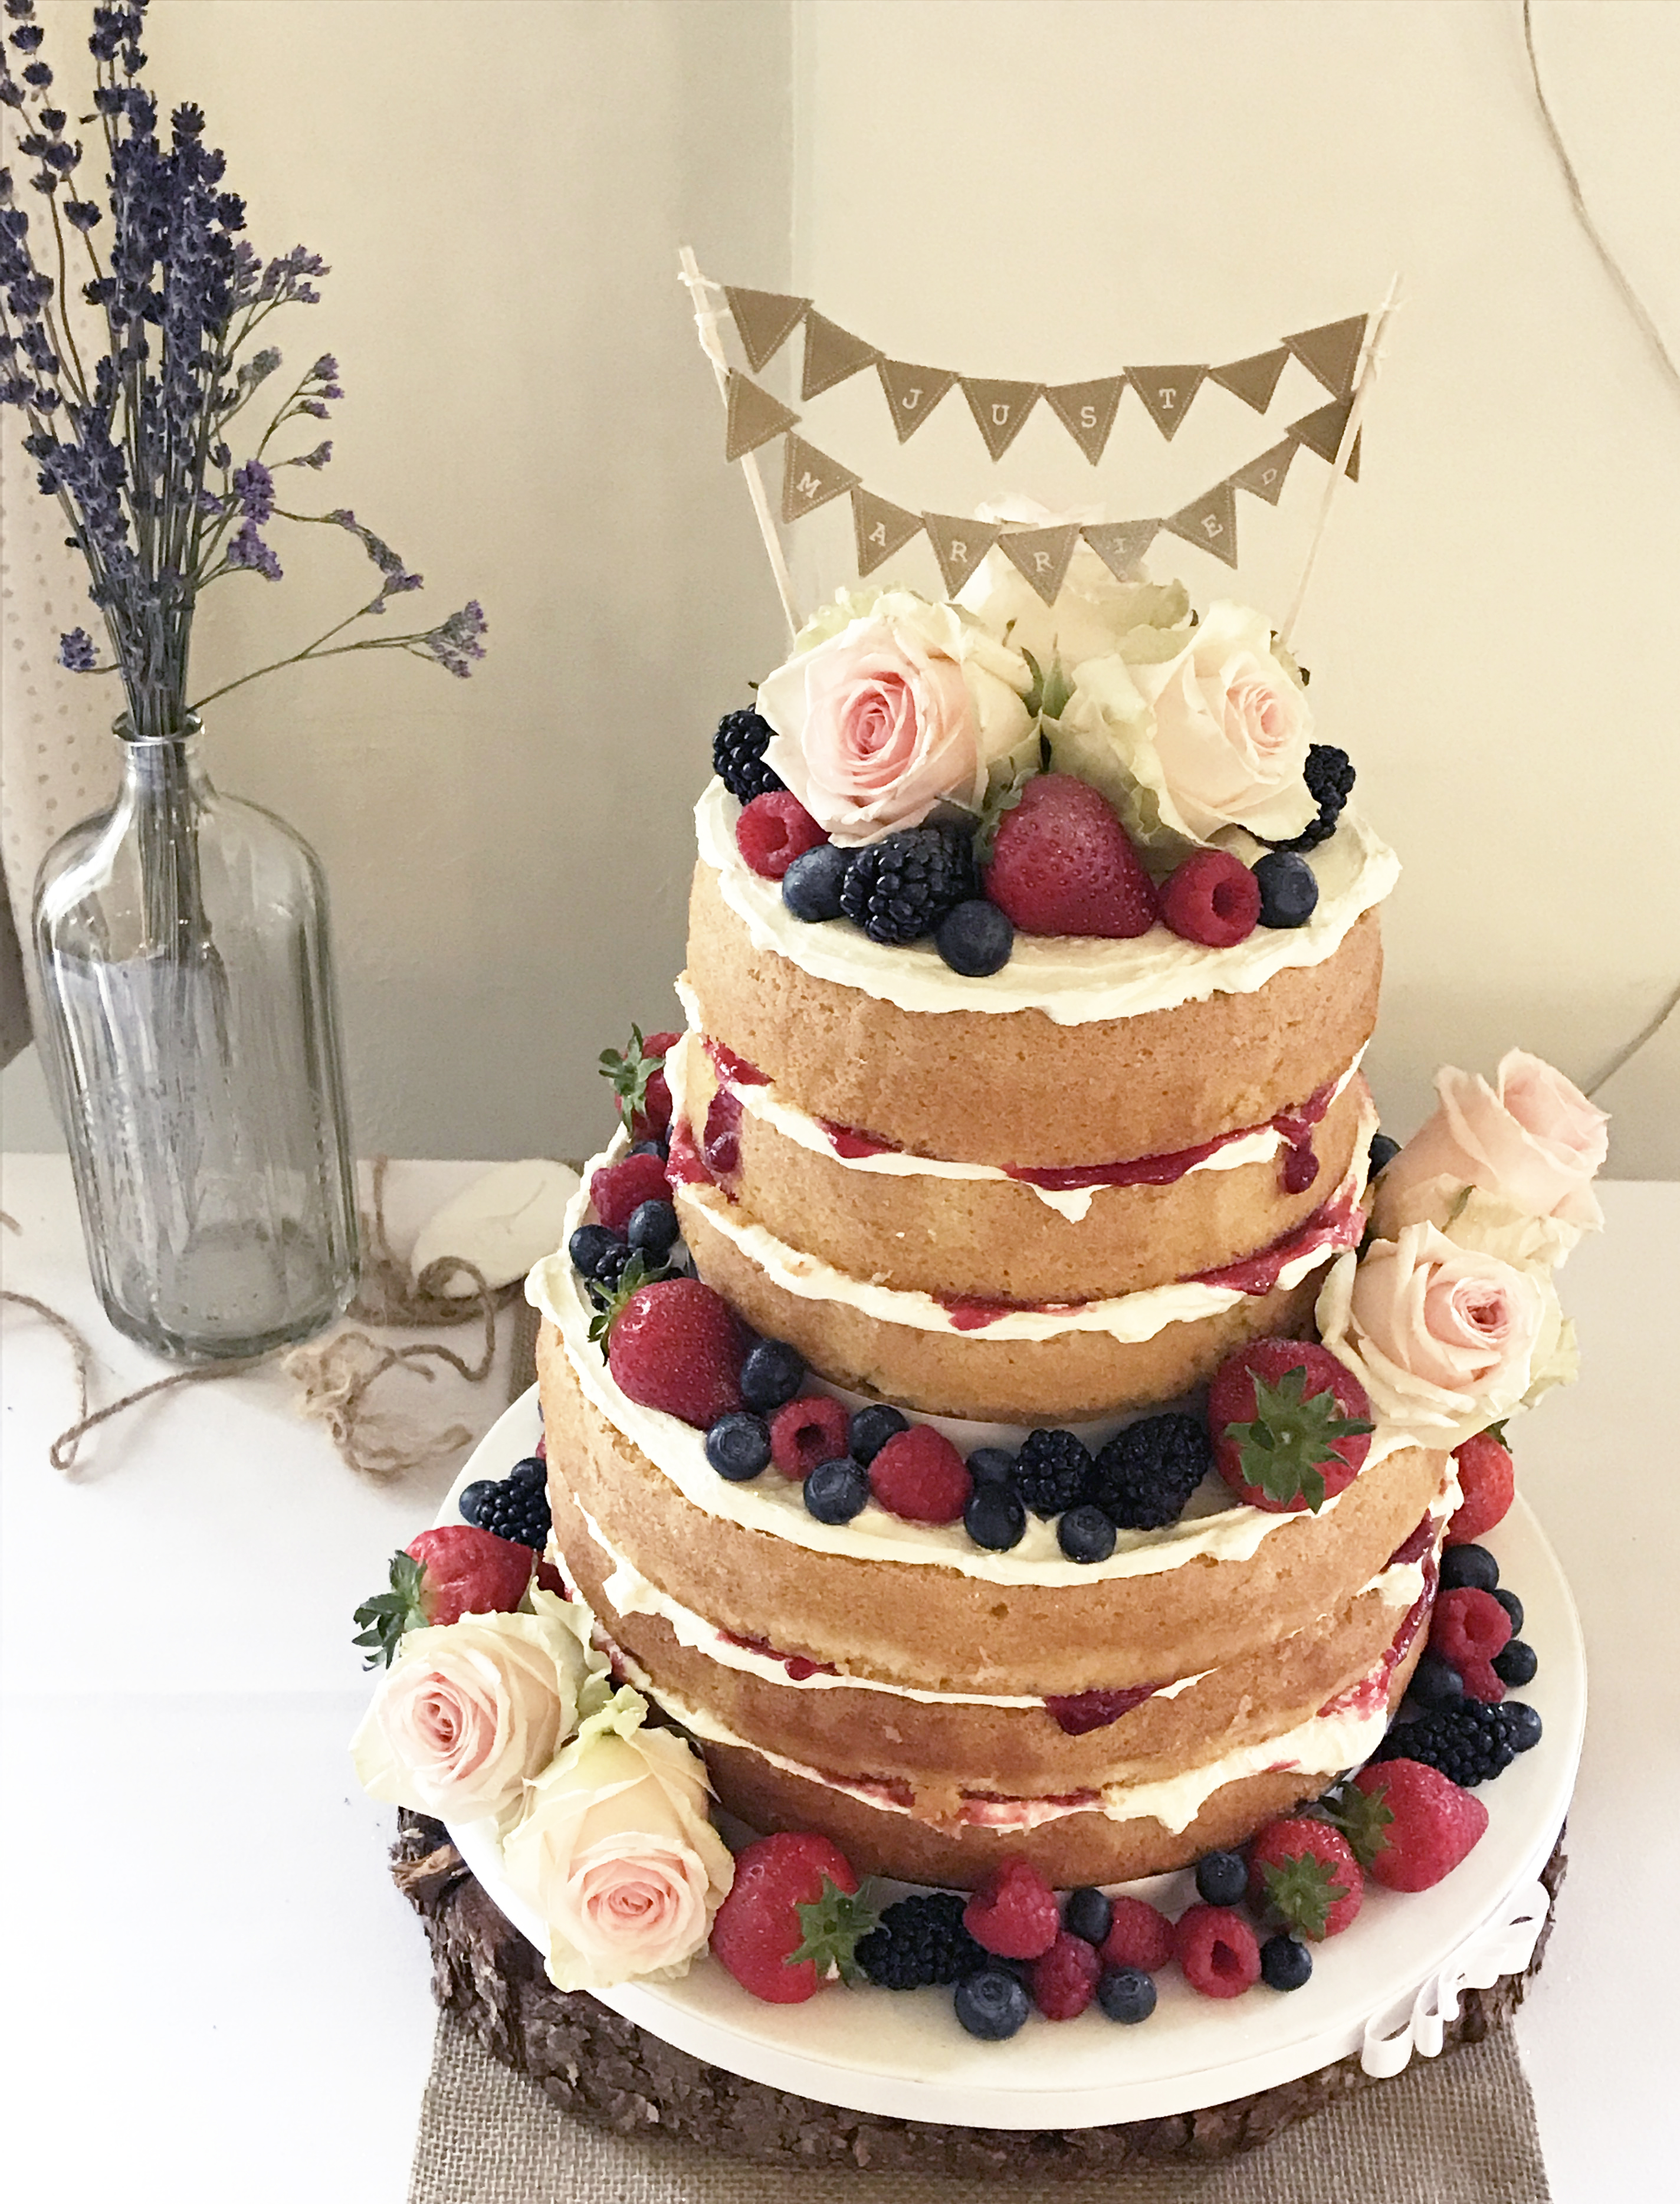 2 Tier Naked Cake